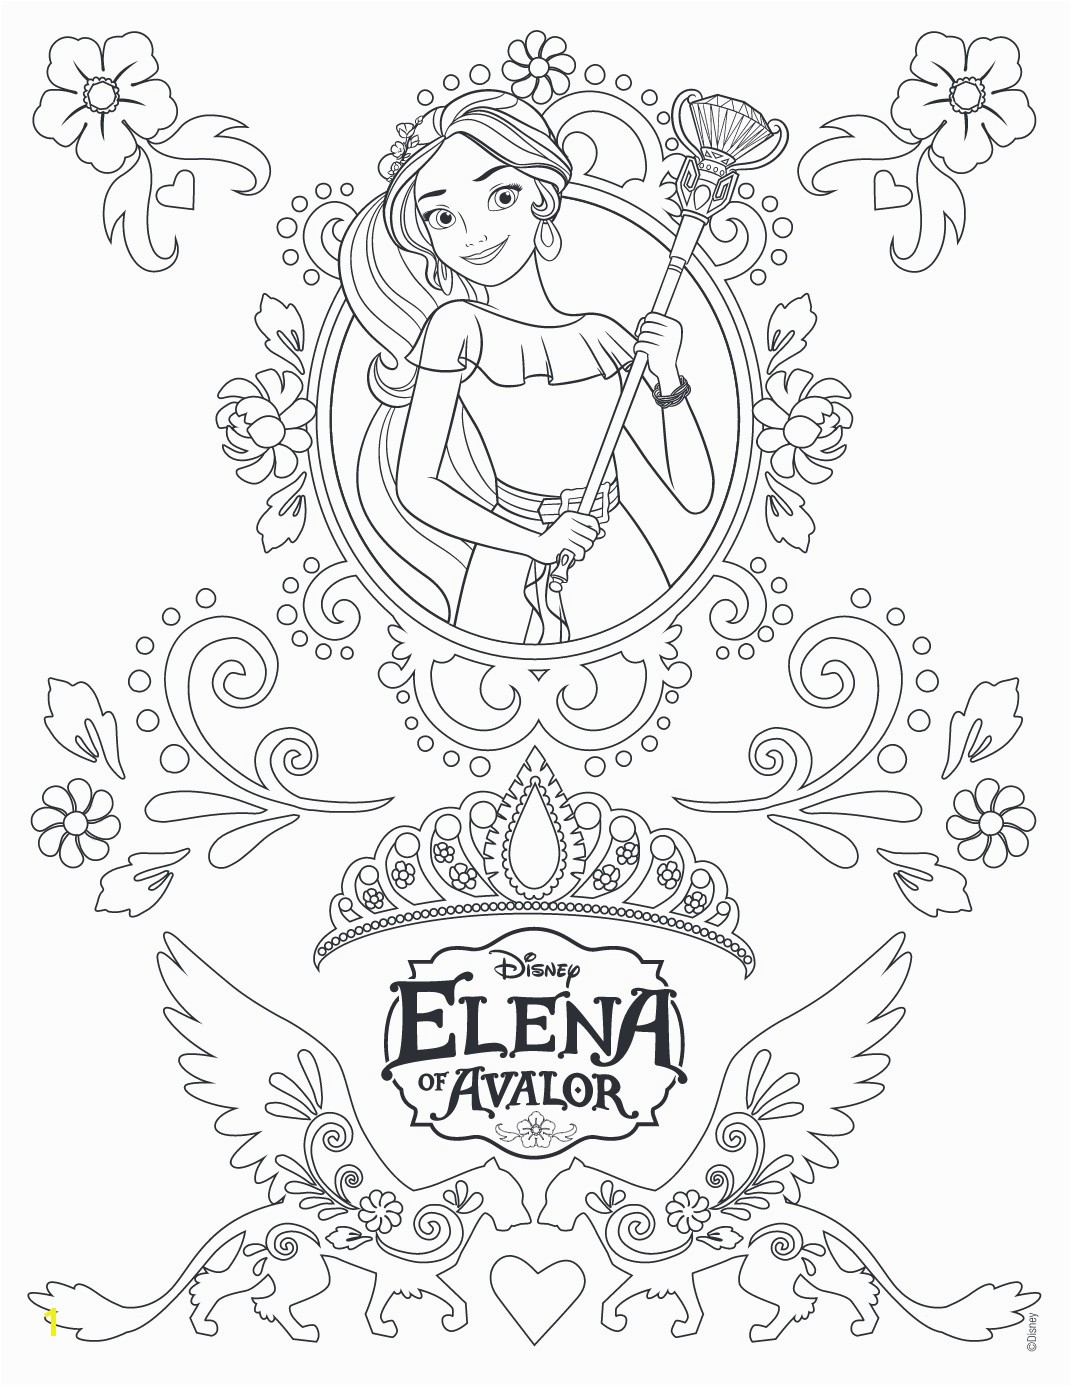 elena of avalor coloring pages 22w elena avalor princesa disney coloring page